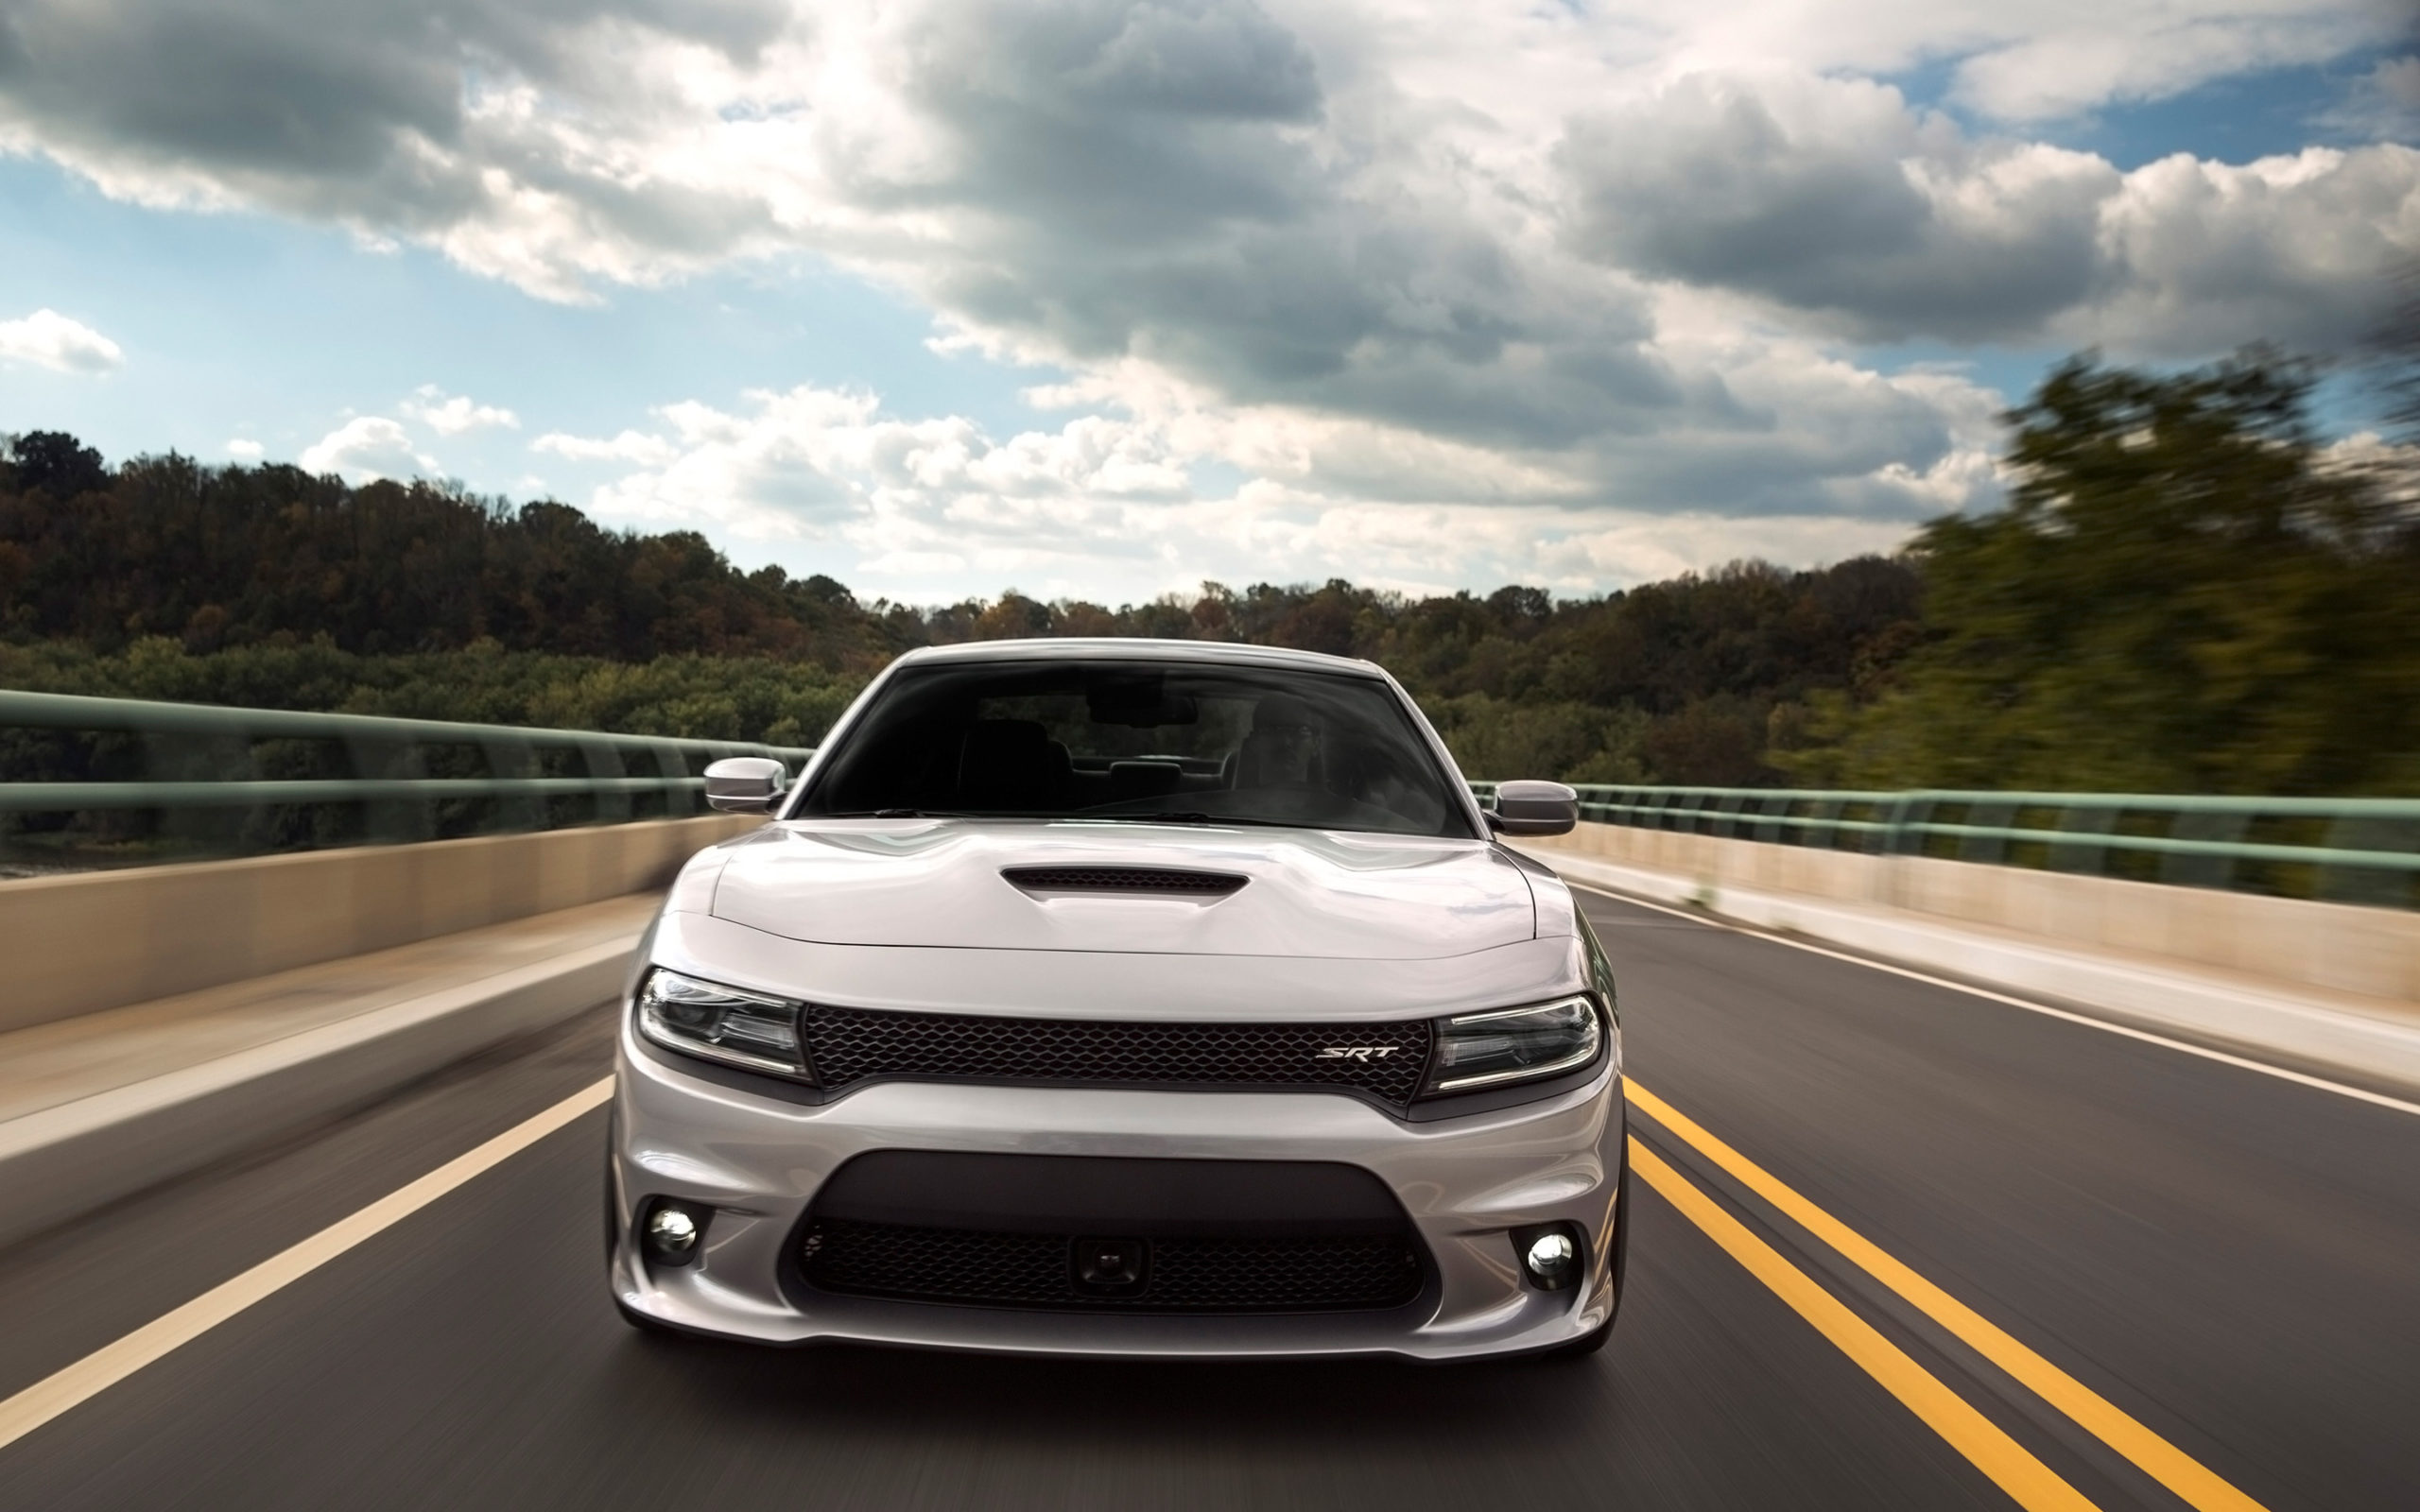 2018 Dodge Charger SRT Serious Wheels